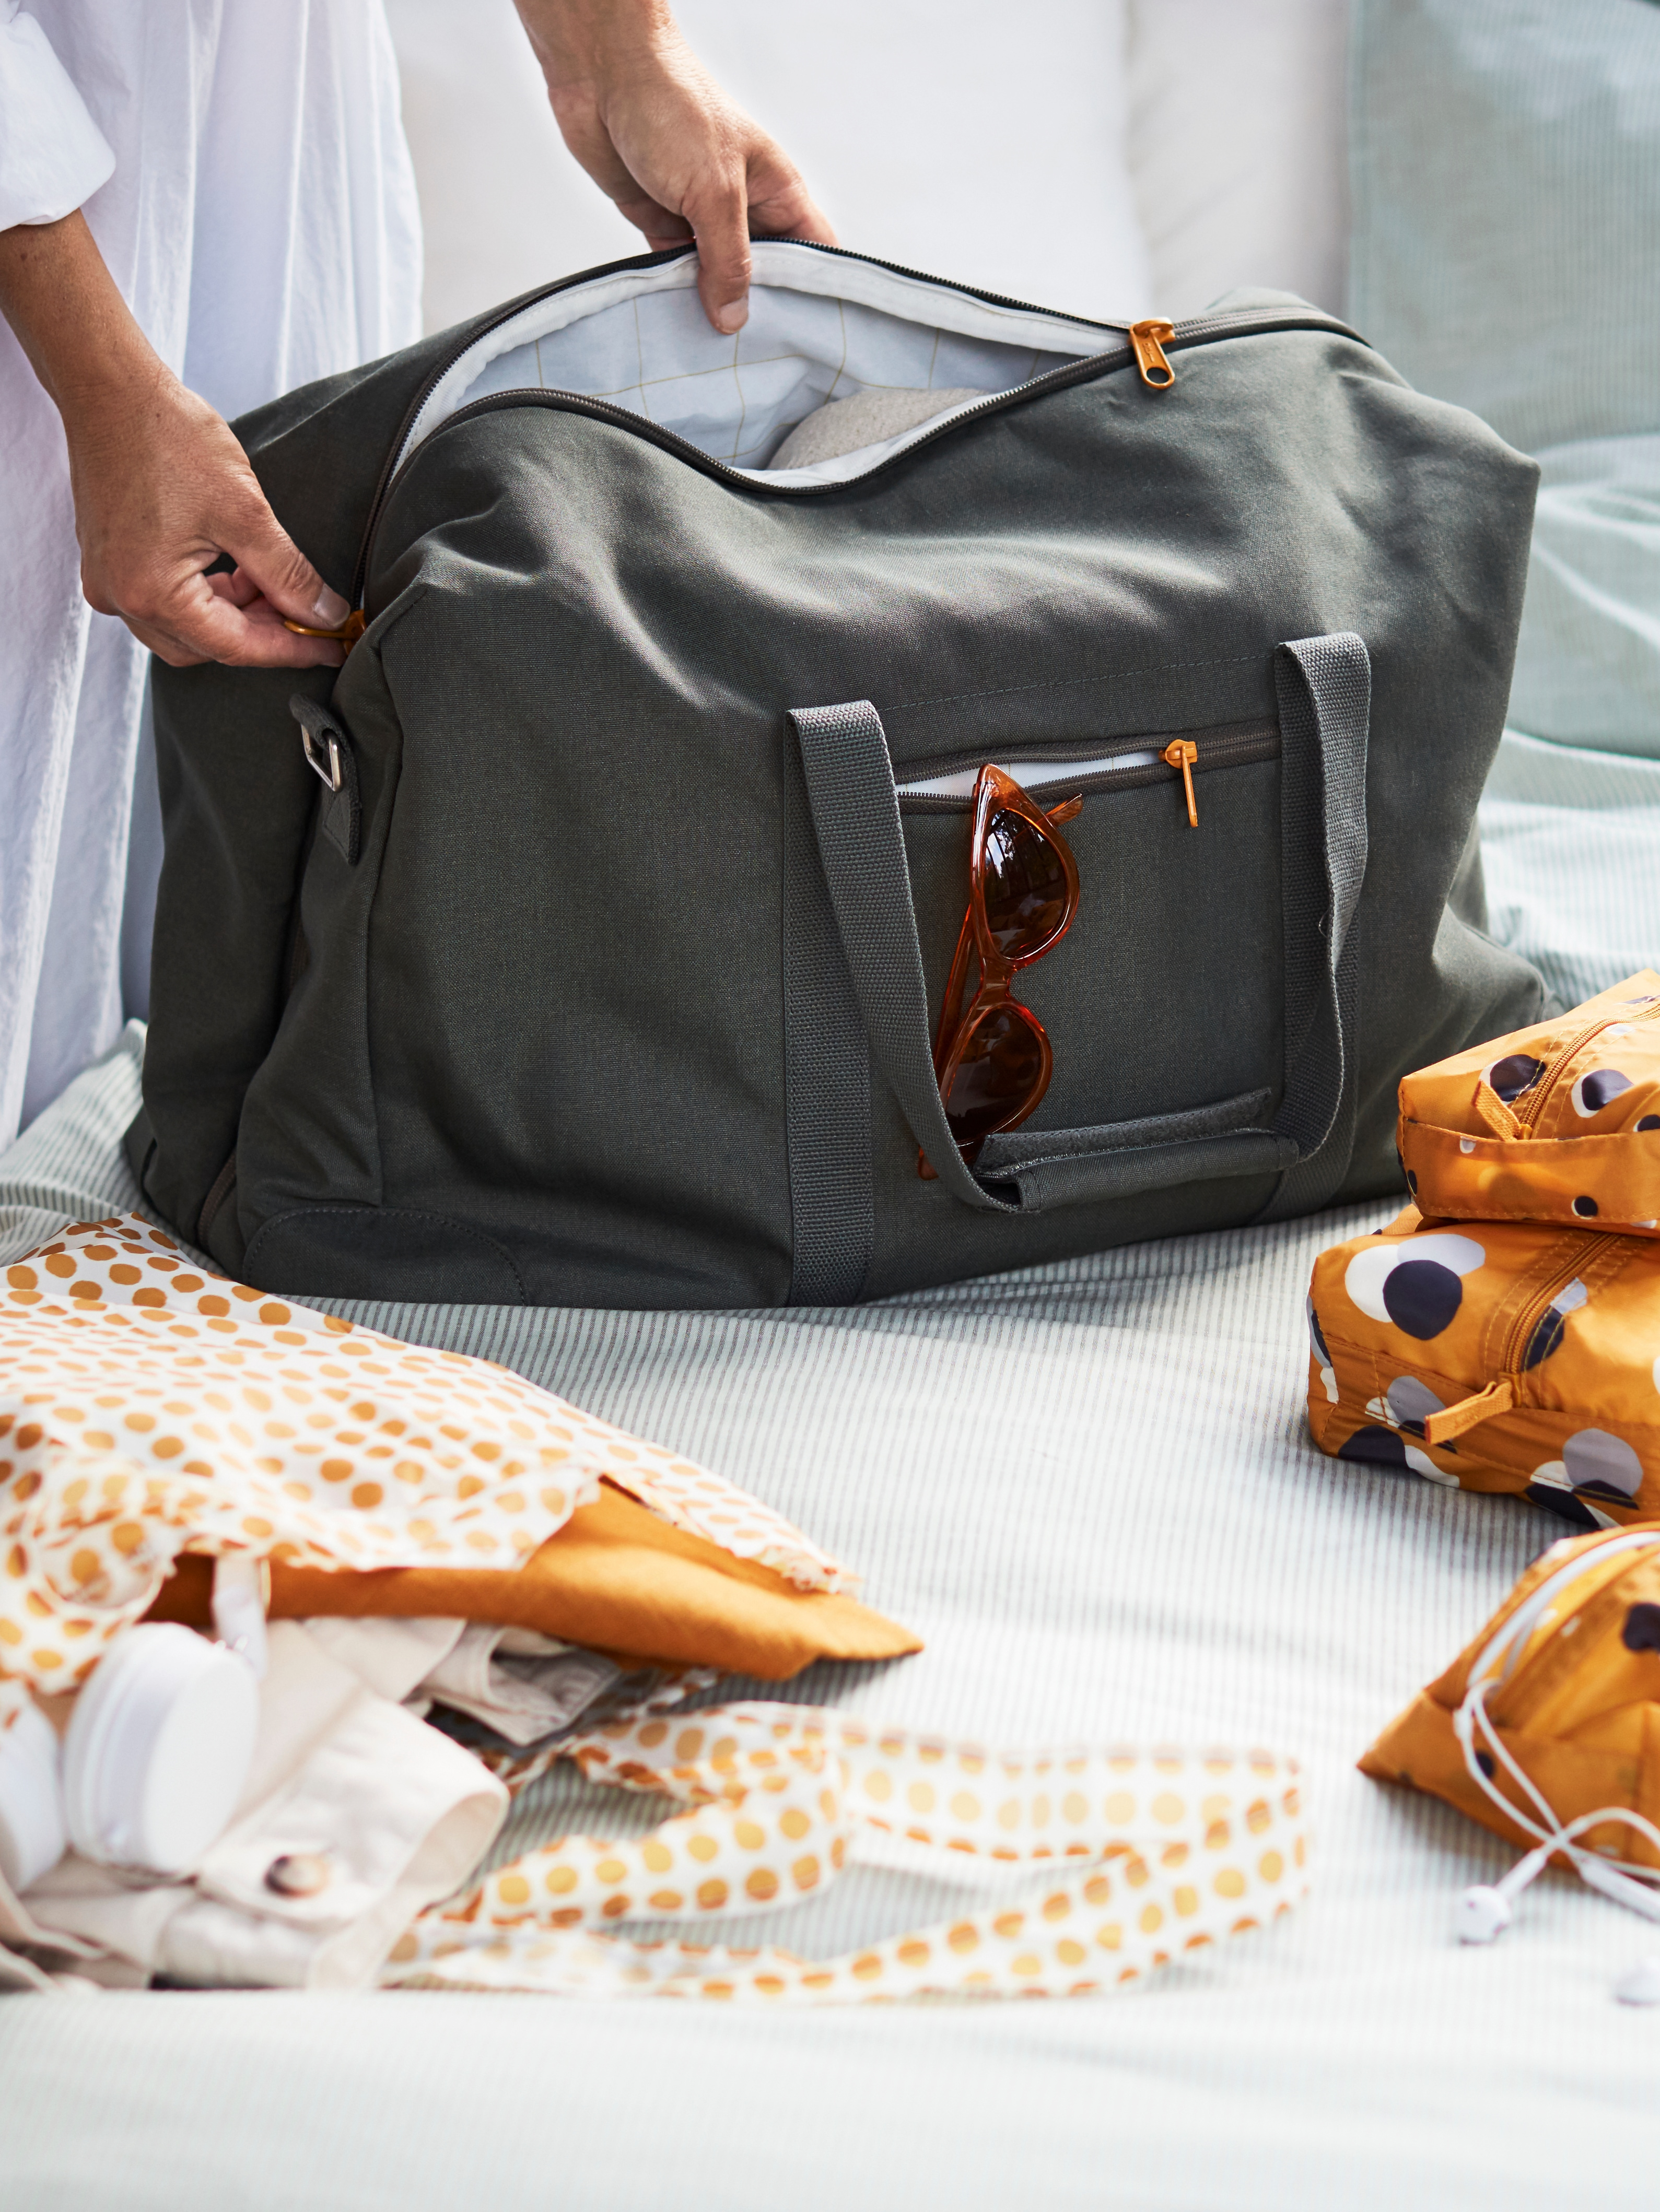 Sunglasses hang in a small pocket of an olive-green DRÖMSACK weekend bag being zipped open. It is on a bed with other bags.